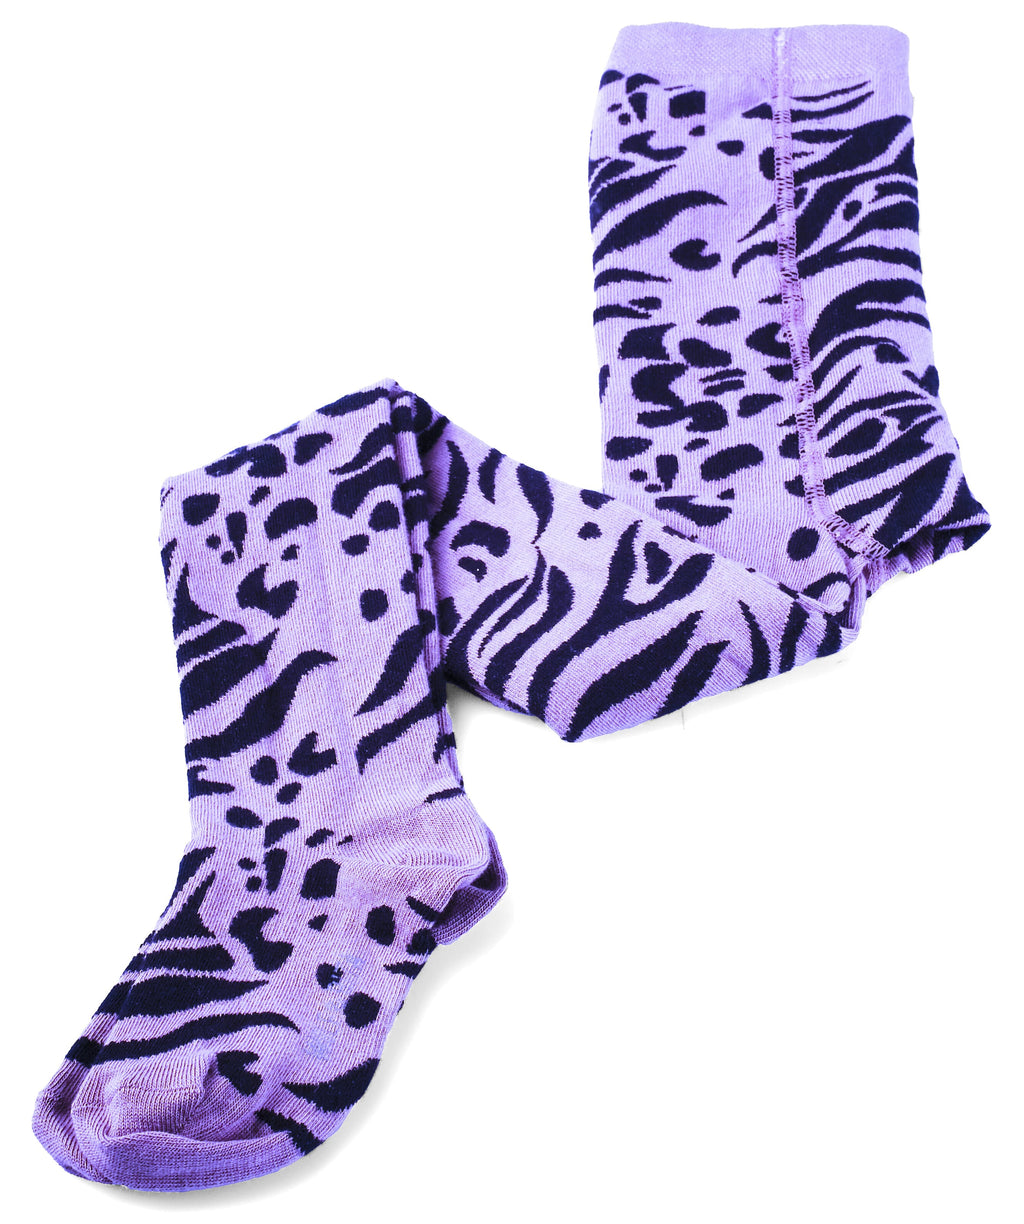 Wolf & Rita Tights - Superbacana Roxo